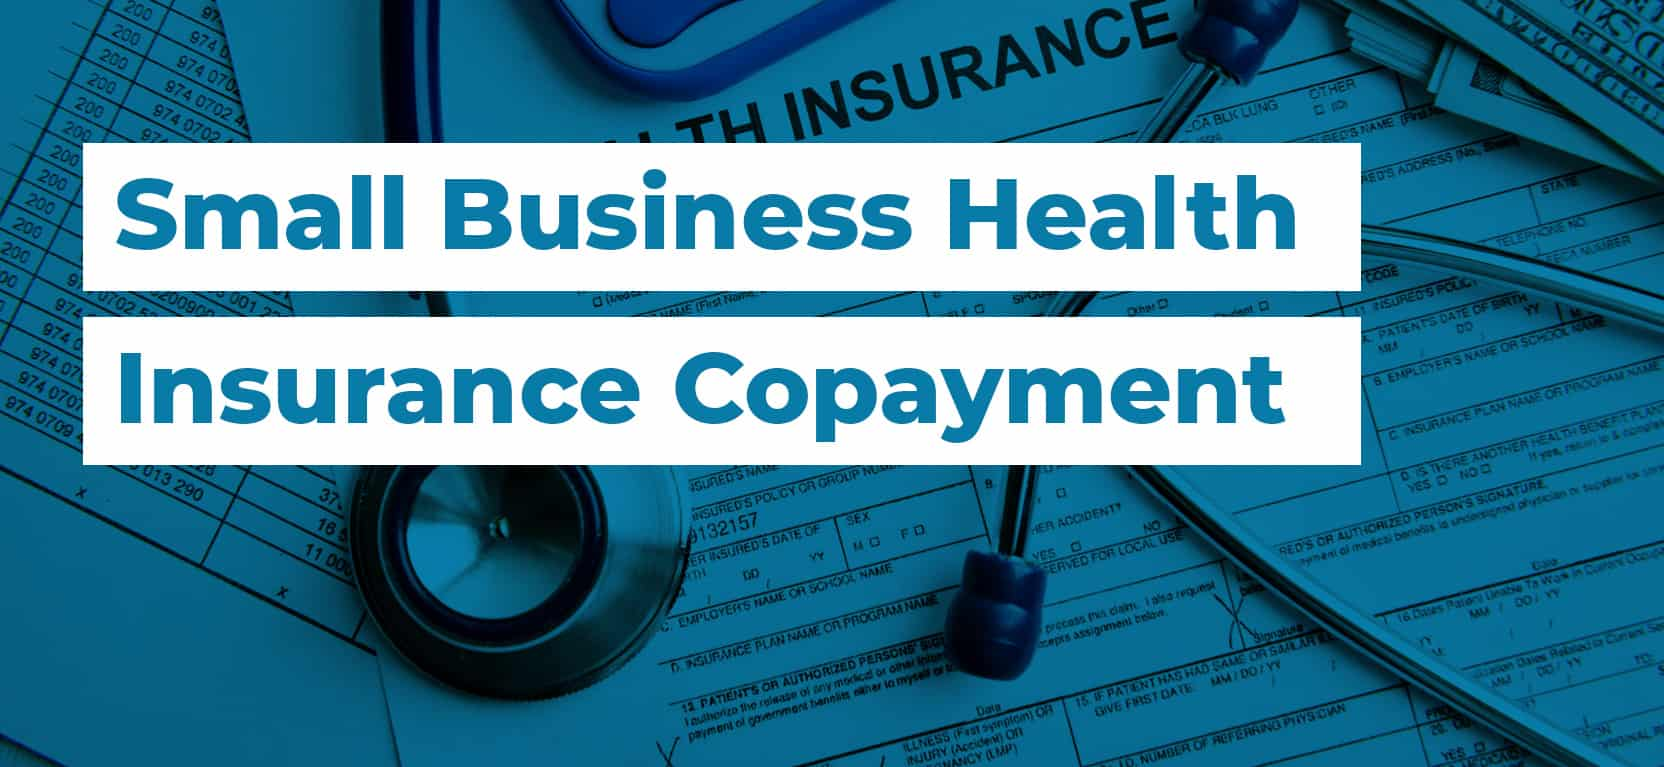 47 Small Business Health Insurance Copayment2